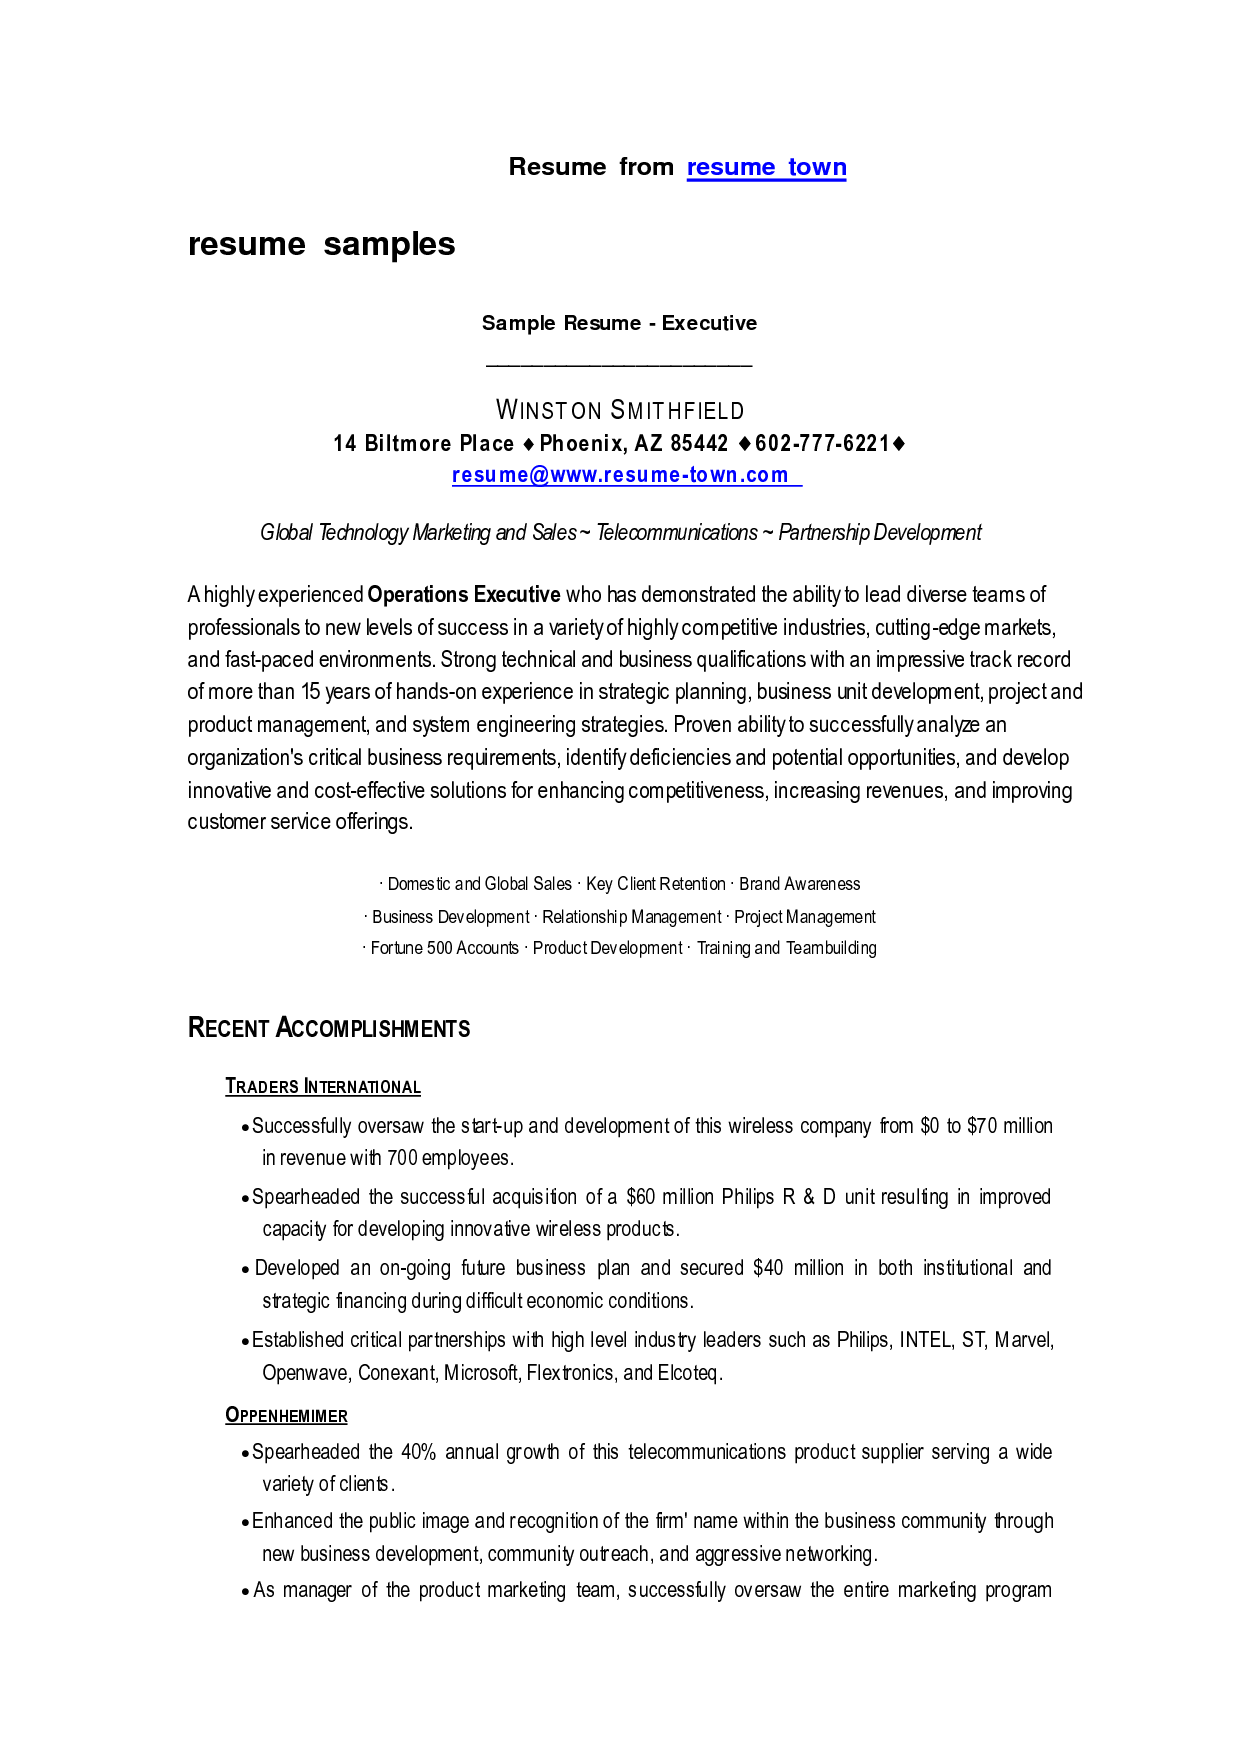 Sample Resume Formats Resume Sample Templates Inspiration Decoration Free Google Docs